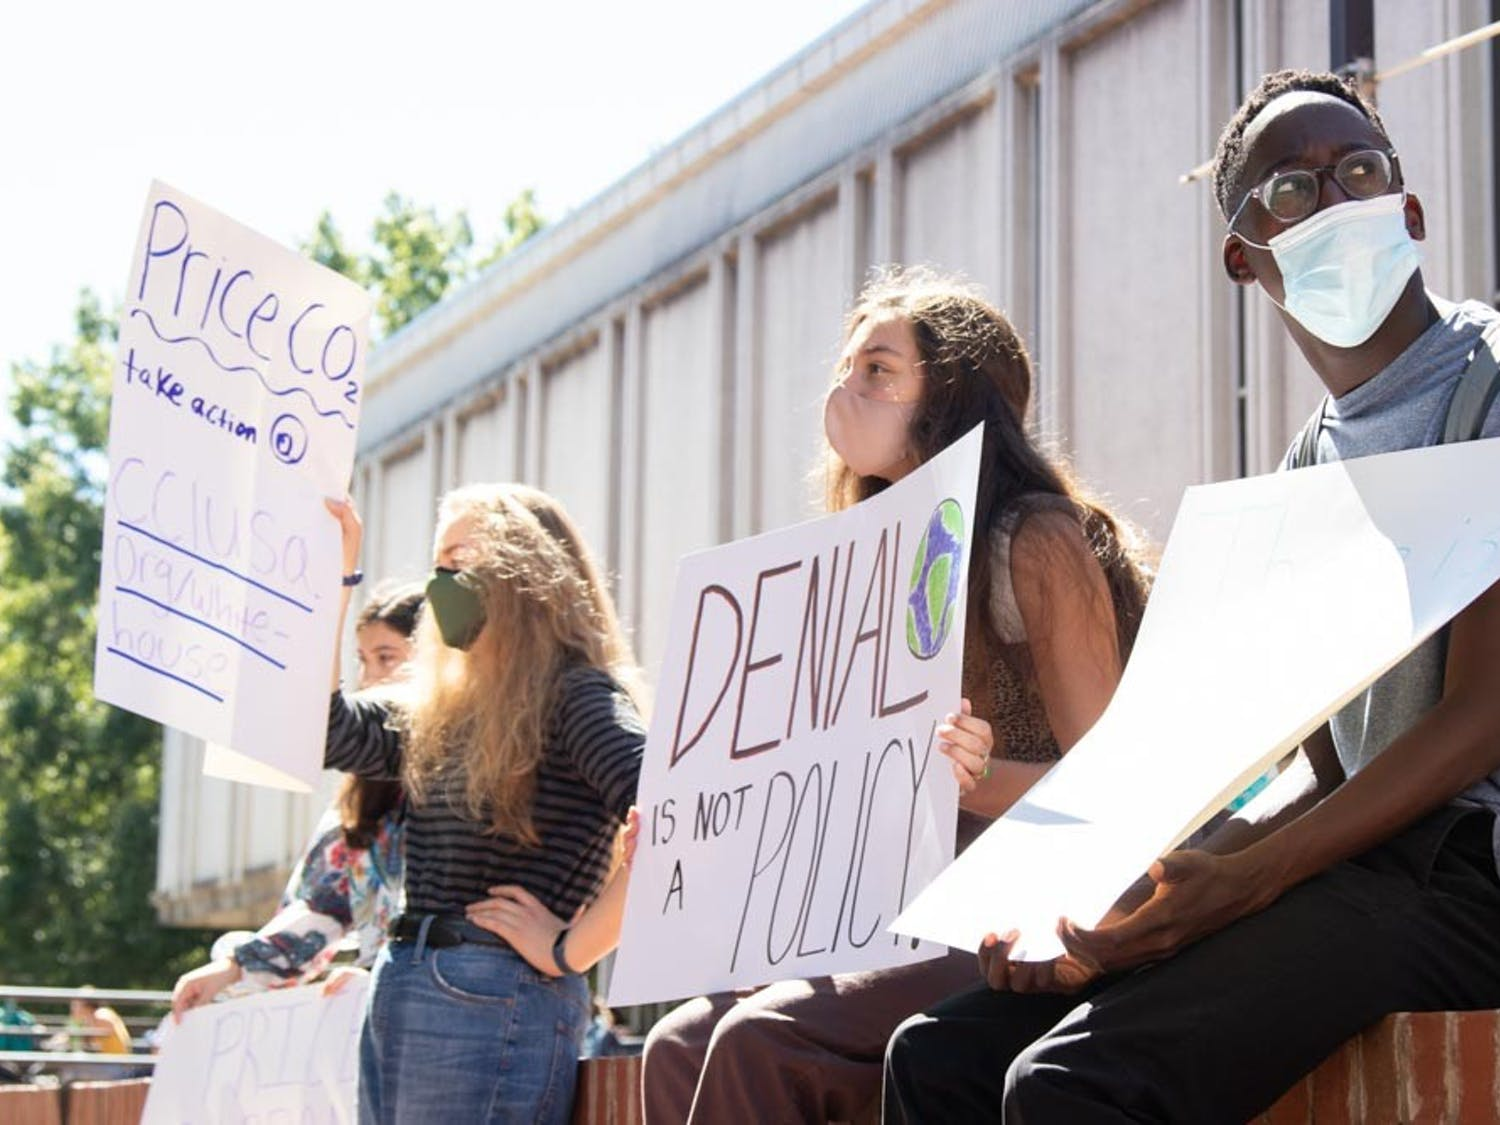 UNC students (from left to right) Jordan Brown, Caitlyn Flanagan, Marisa Romanat, and Tariro Magrira particpate in protest of UNC's coal plant in The Pit on Sep. 24, 2021.